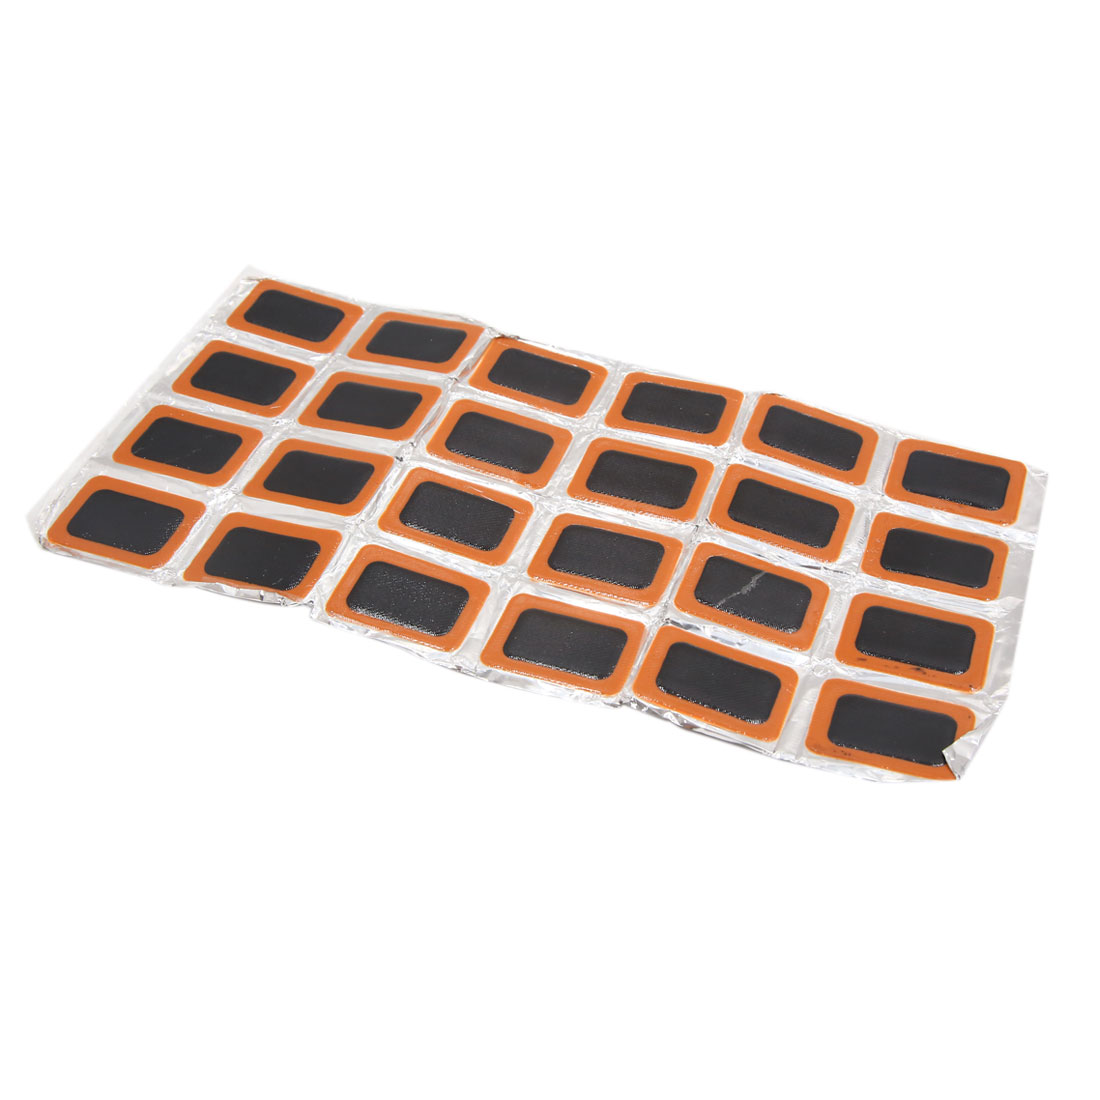 24pcs Tire Tyre Puncture Patches Repairing Tool 34mm x 25mm for Bicycle Bike